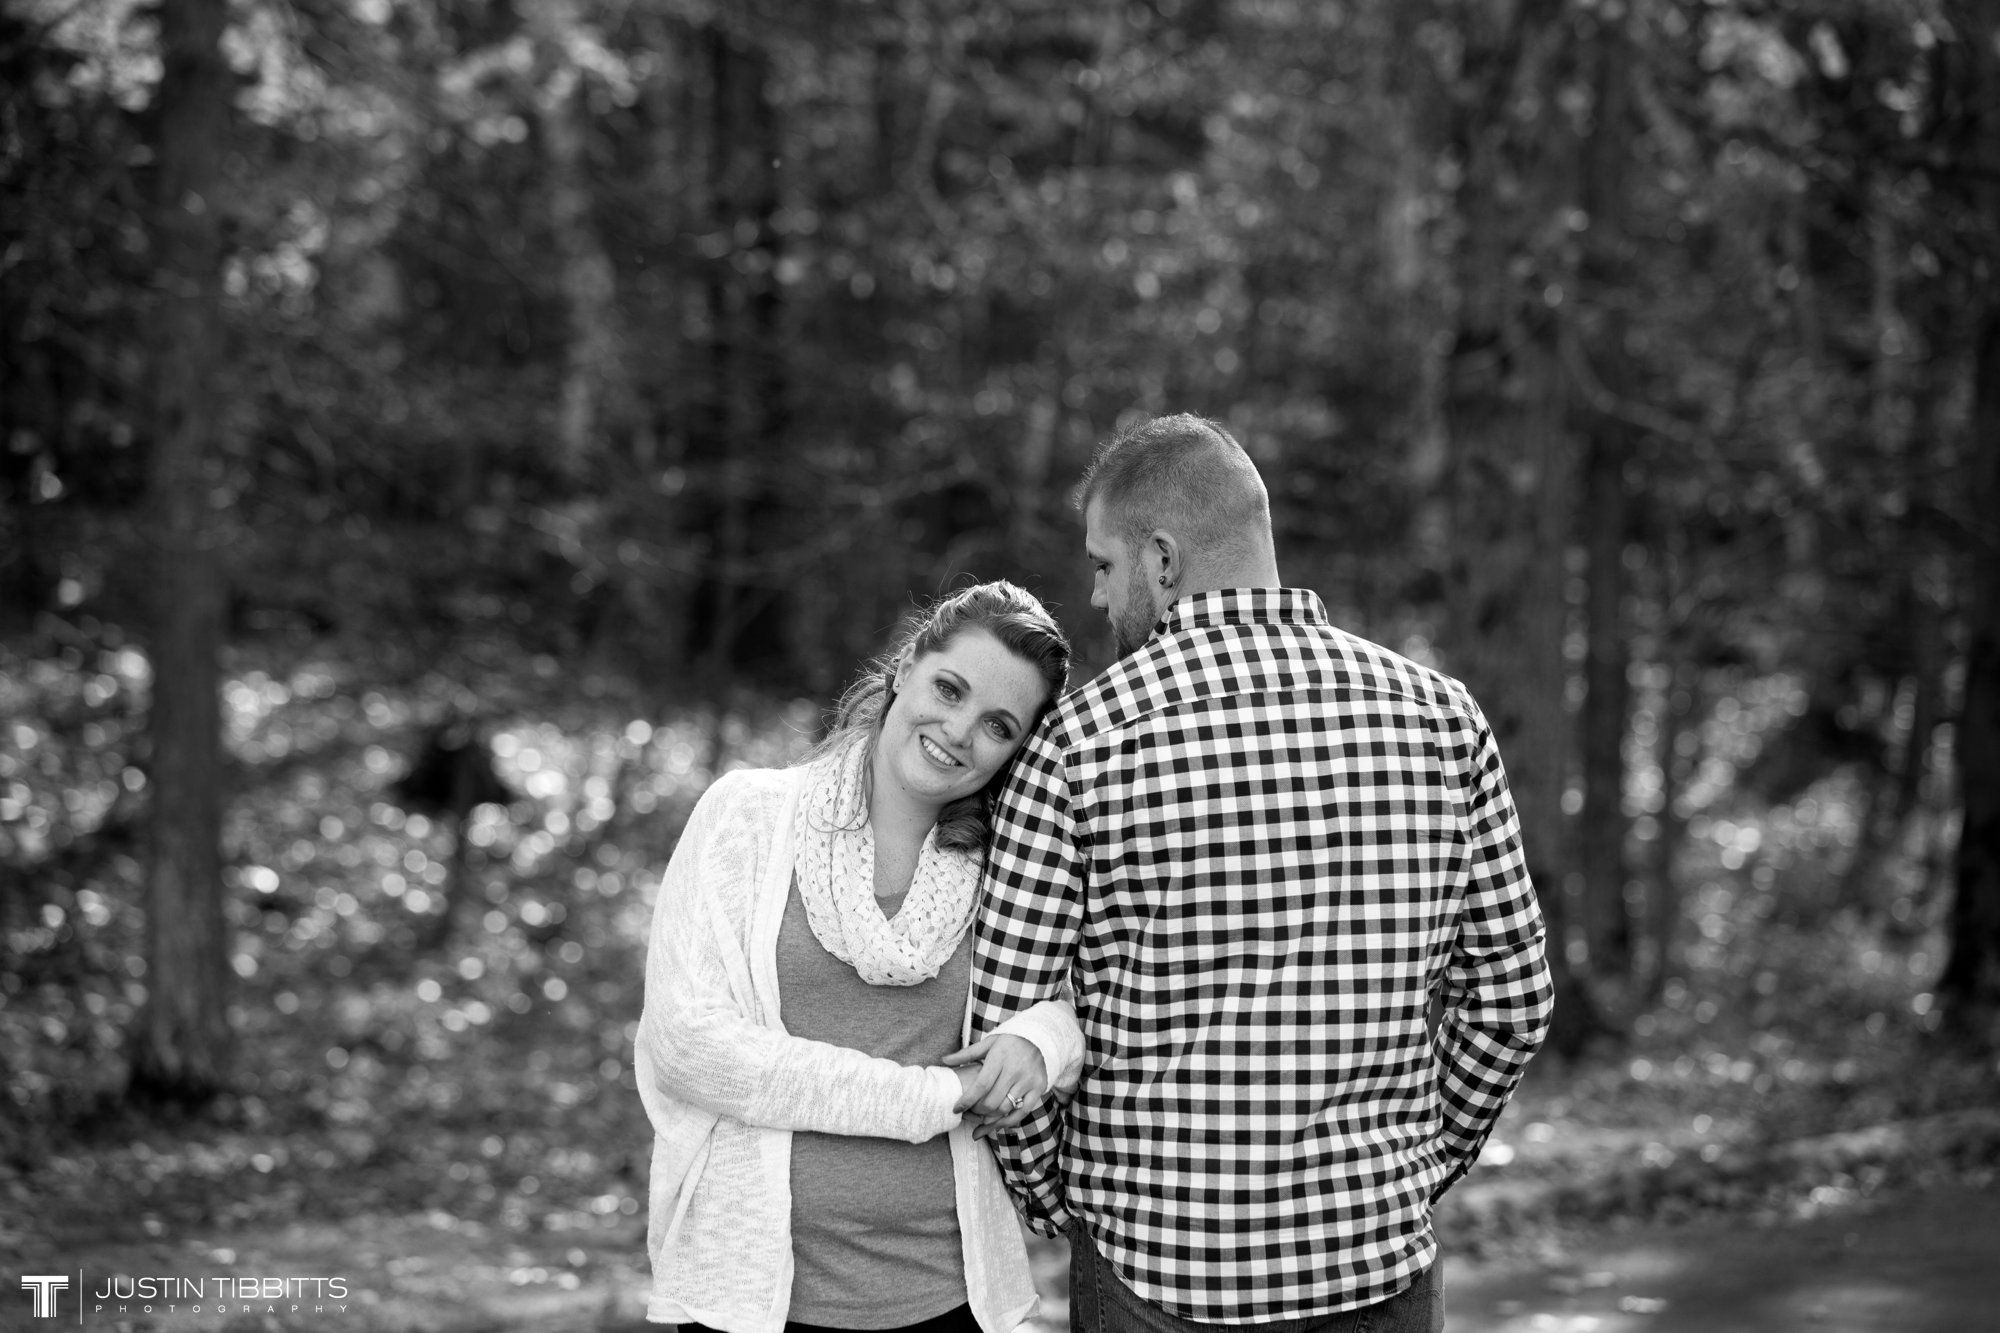 Justin Tibbitts Photography Ashlee and Steves Thatcher Park, New York Engagement Shoot-32